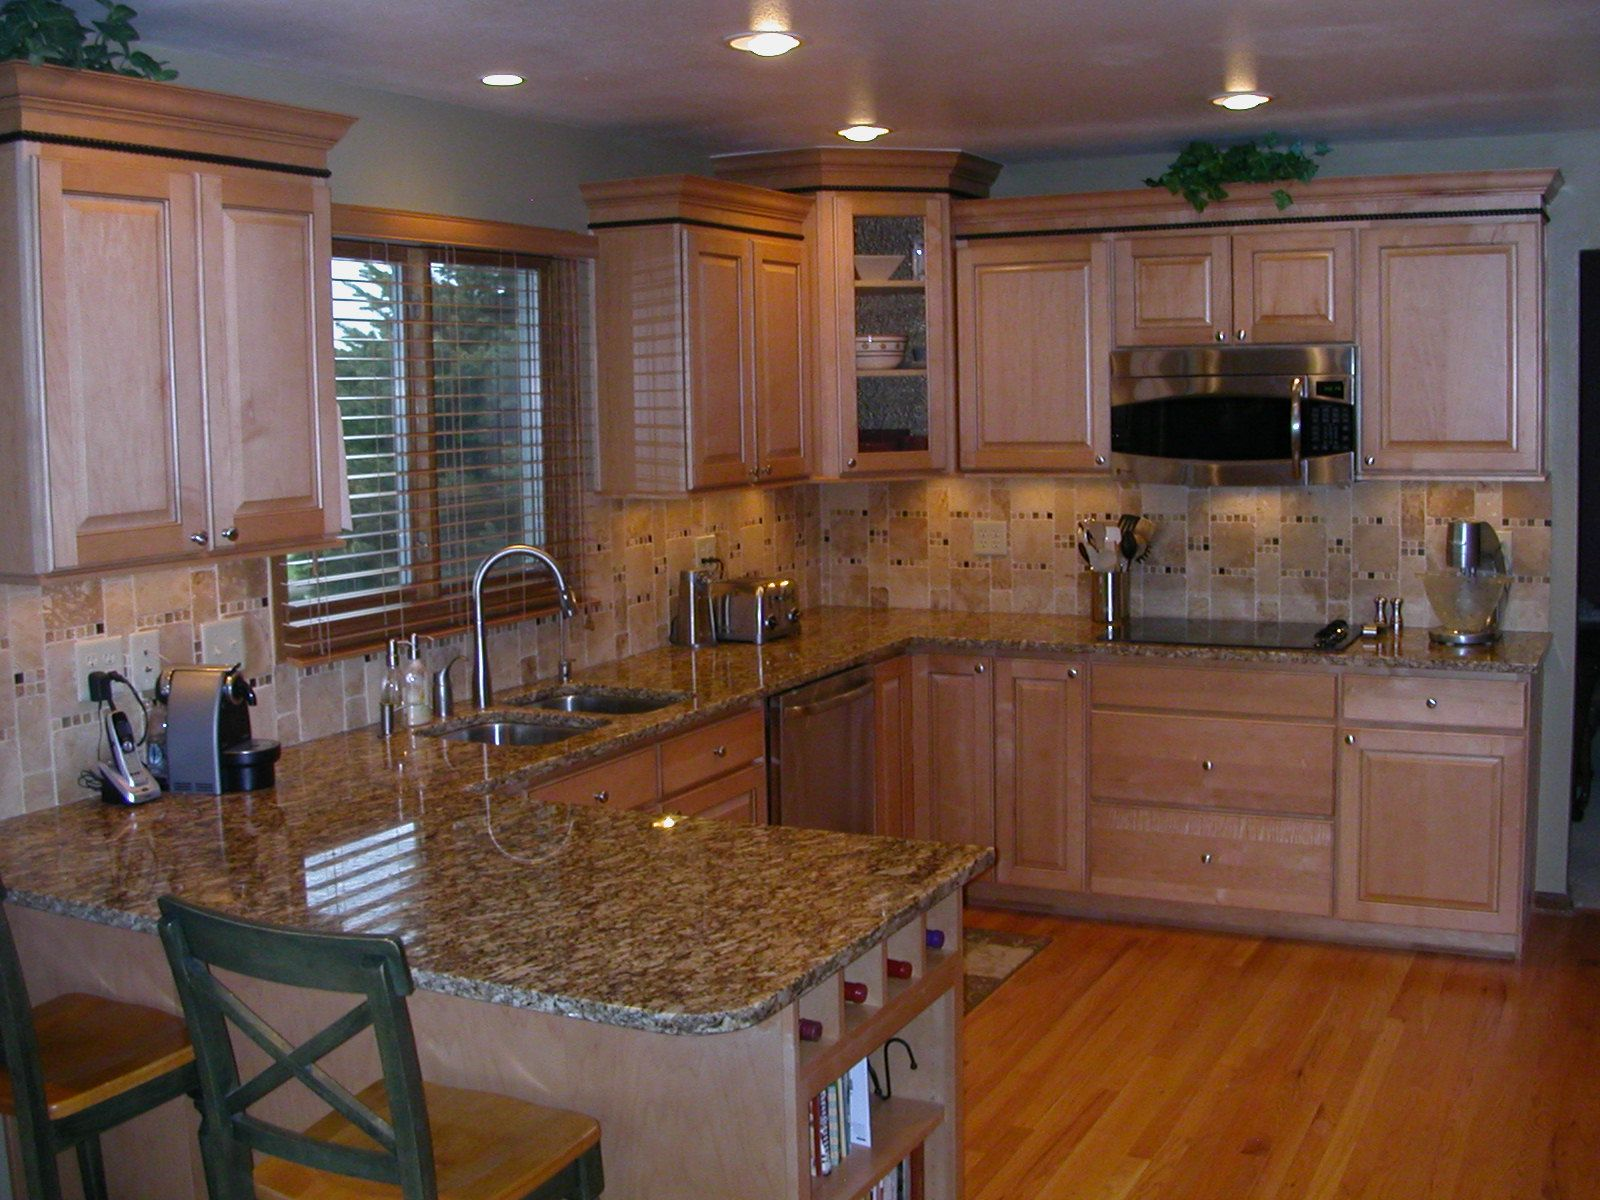 Remodeled Kitchen in natural maple cabinets | Kitchen ... on Backsplash Ideas For Maple Cabinets  id=67939